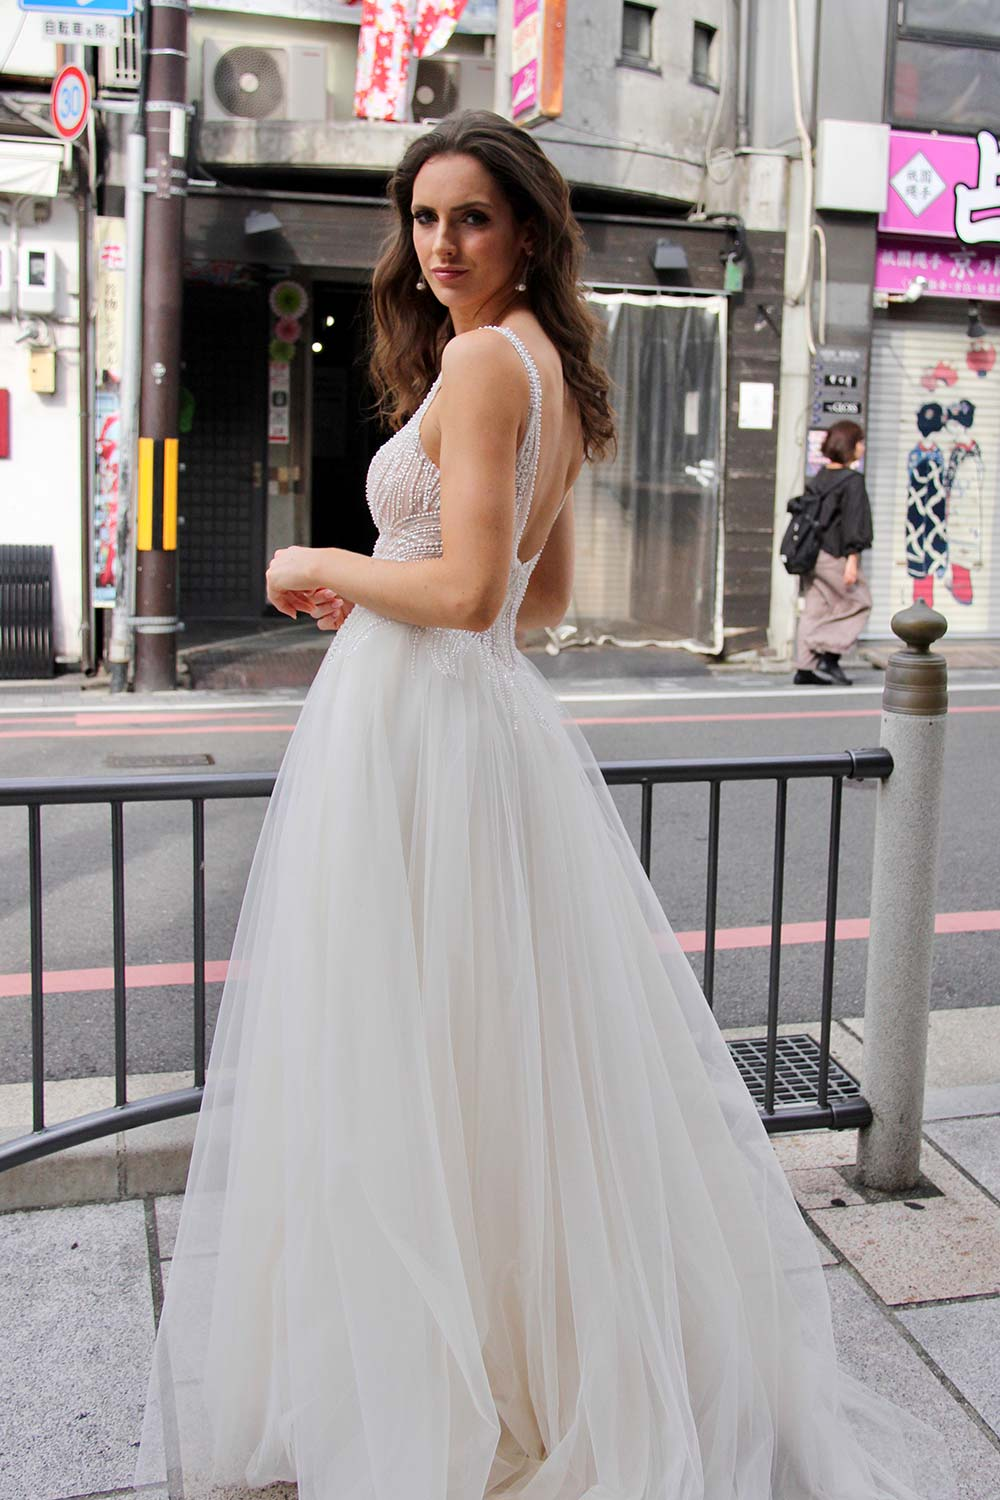 Female model wearing Vinka Design An Oriental Affair Wedding Dress. On a Japanese street the side detail of a gown with a hand-beaded, nude-based, semi sheer bodice with a deep v-neckline and low back with a tulle skirt.